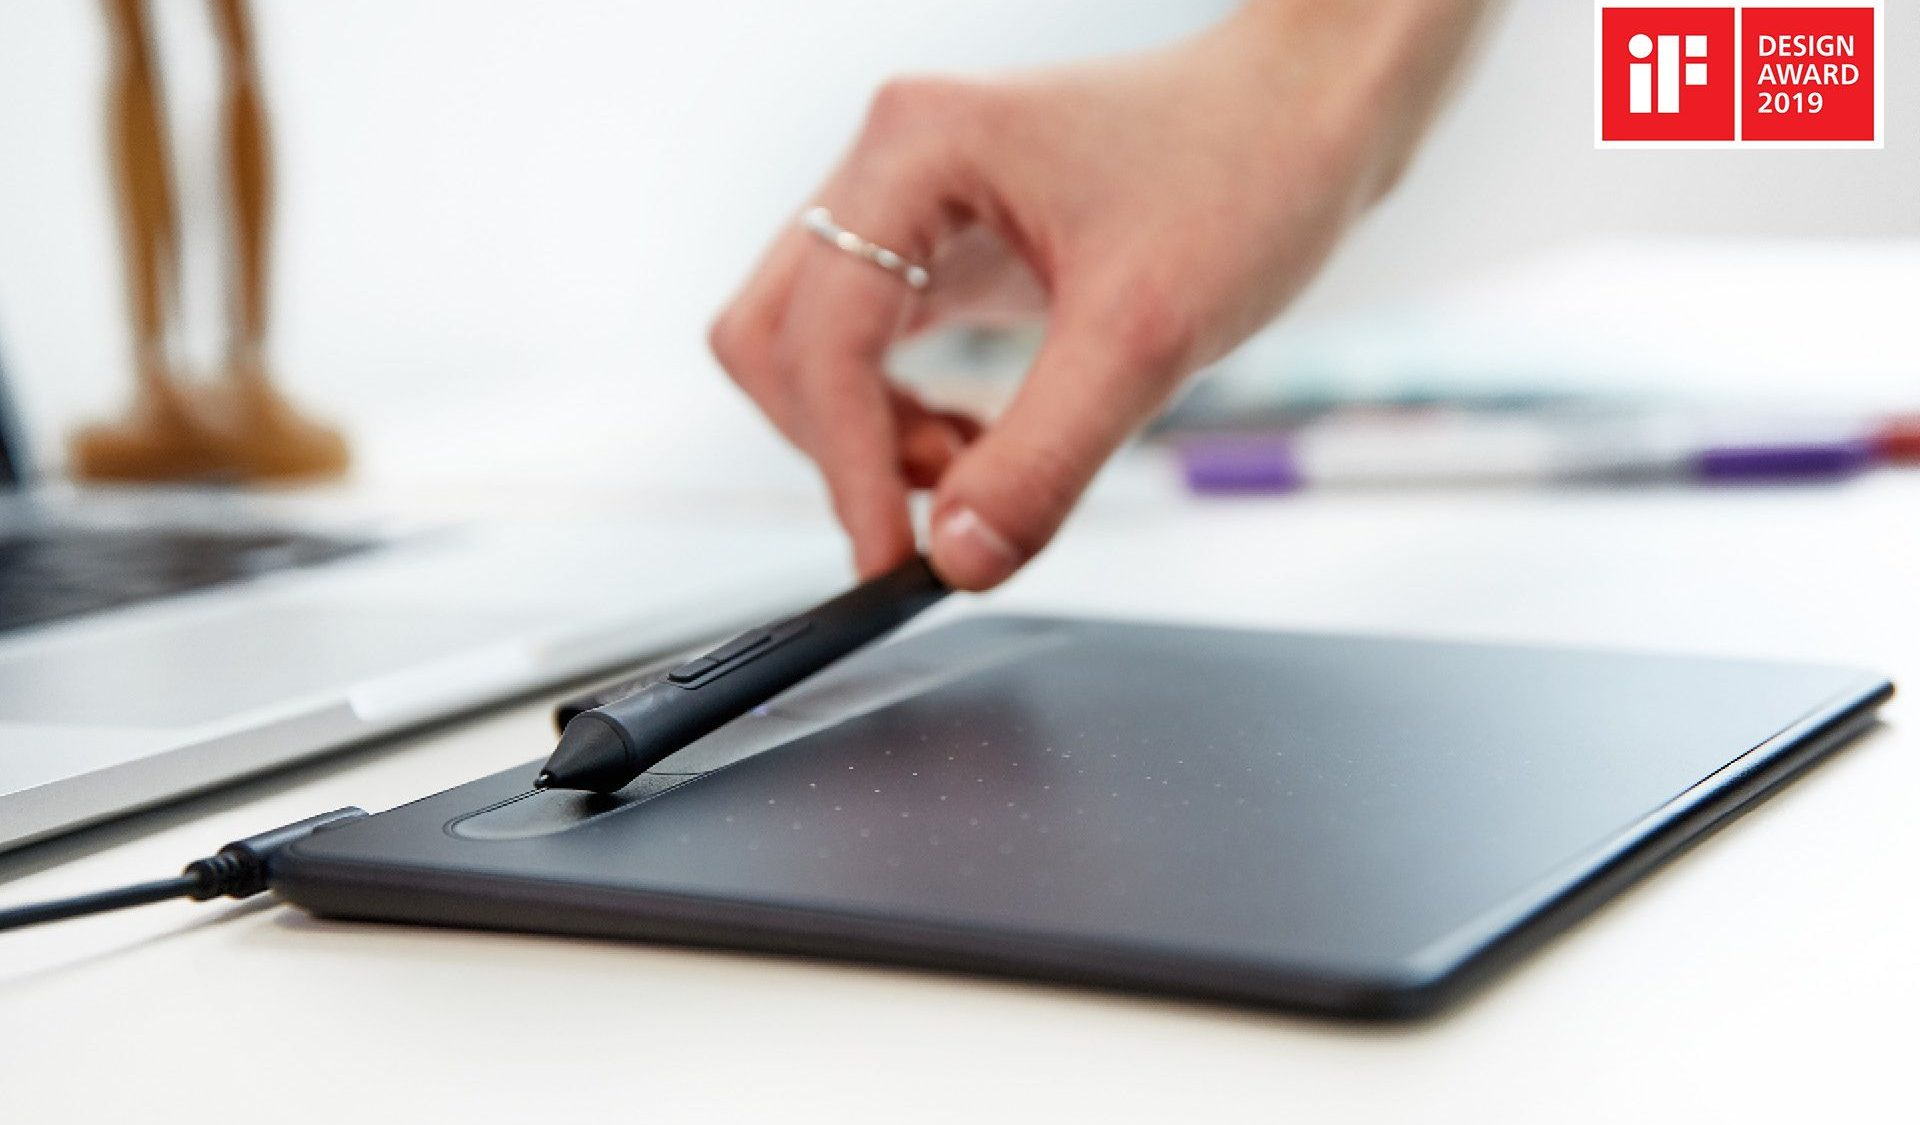 Wacom adds Intuos Drawing Tablet to Works with Chromebook lineup